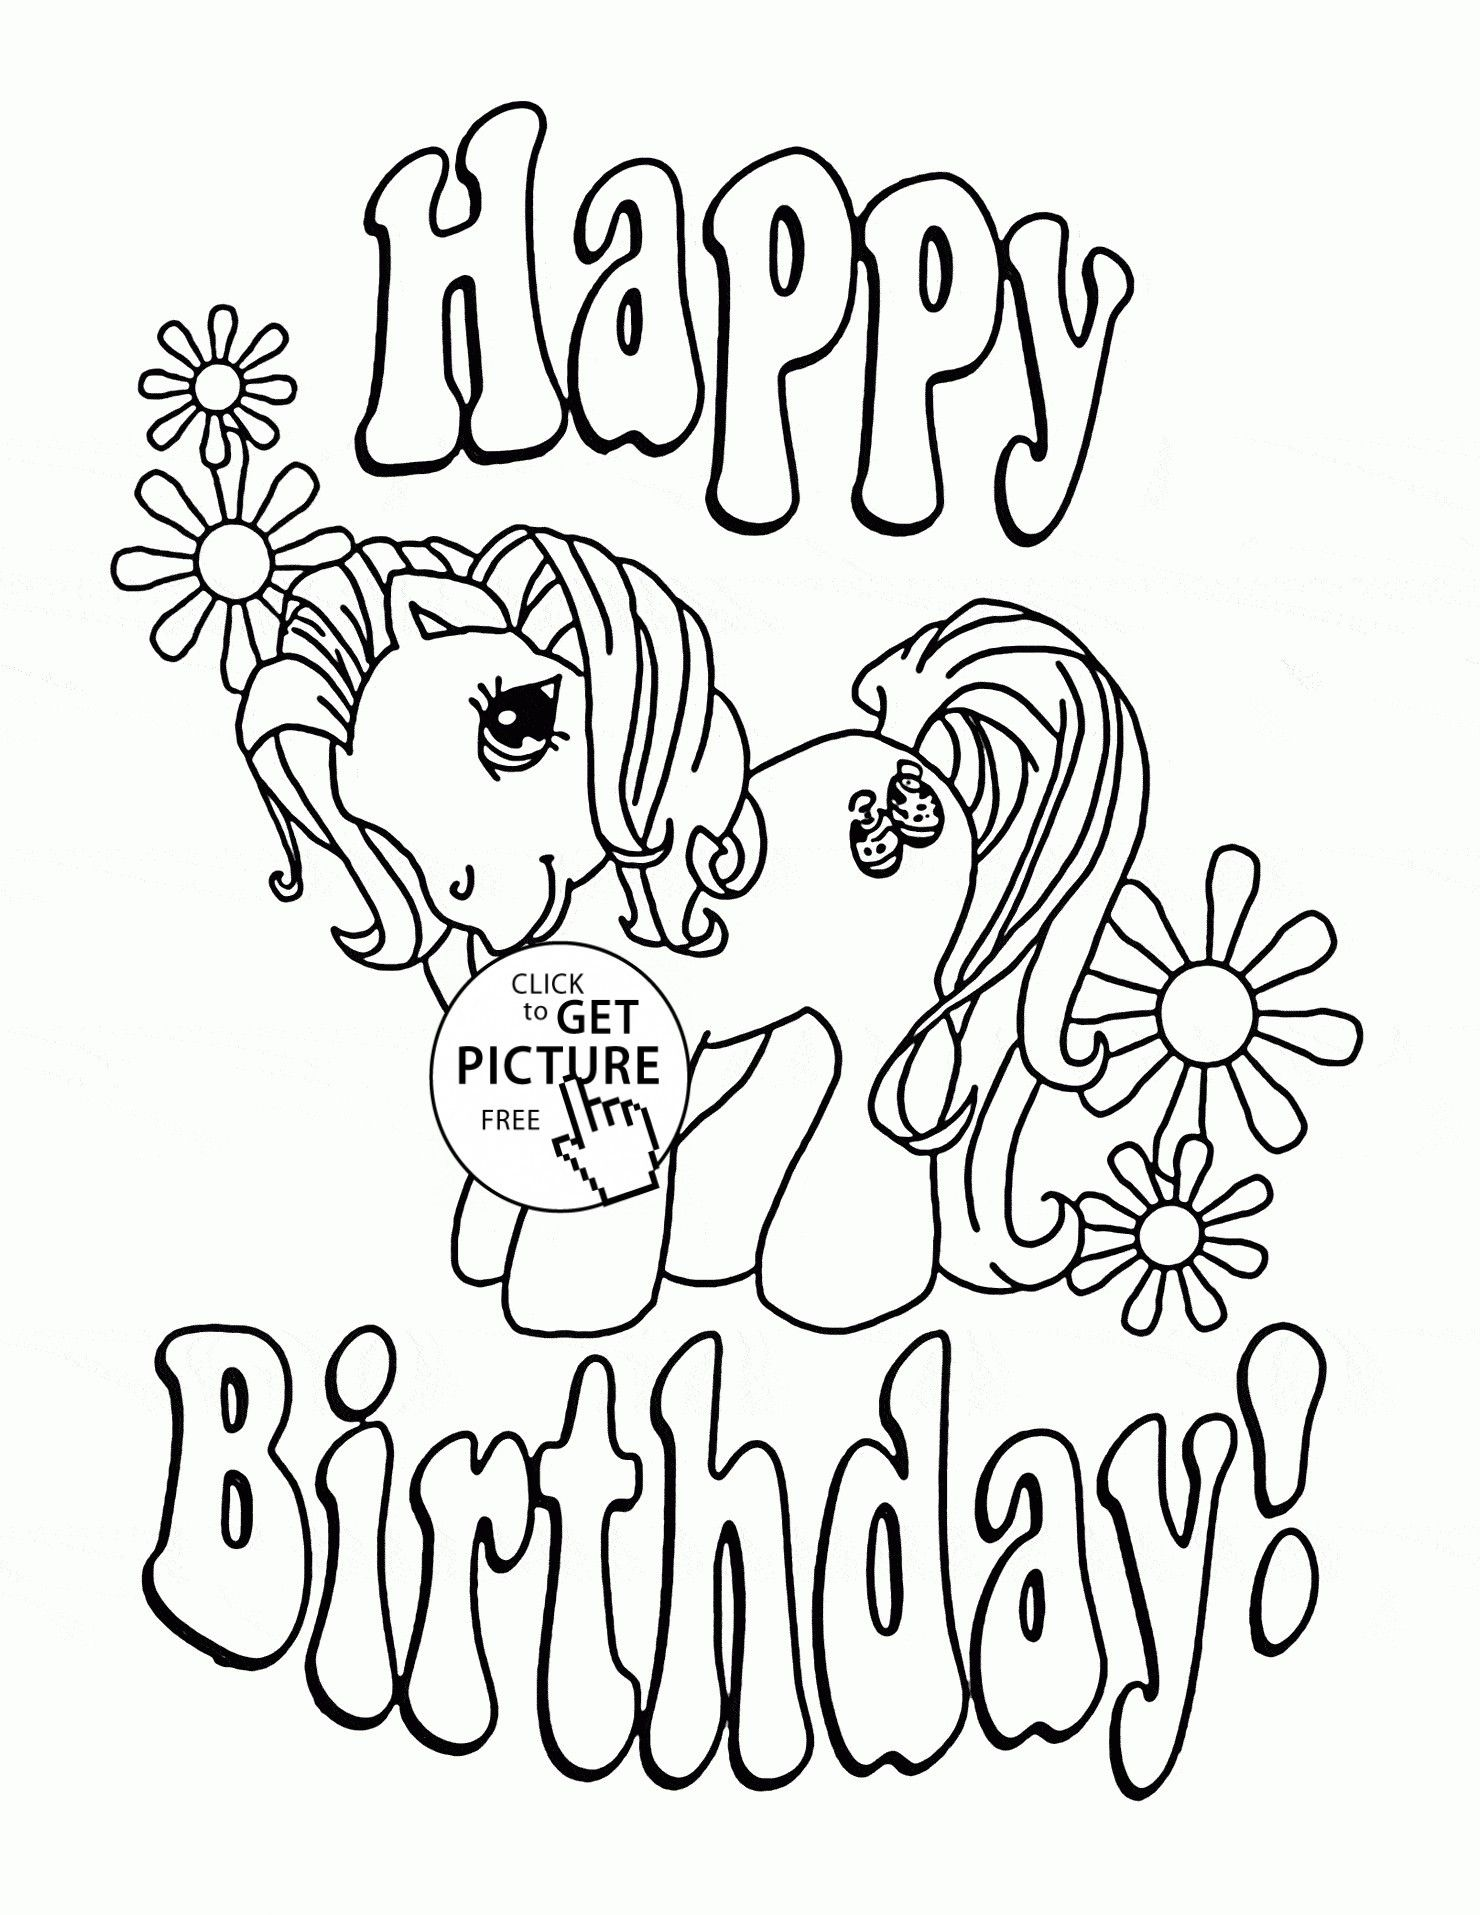 Unicorn Coloring Pages Ideas With Printable Pdf Free Coloring Sheets Coloring Birthday Cards Unicorn Coloring Pages Happy Birthday Coloring Pages